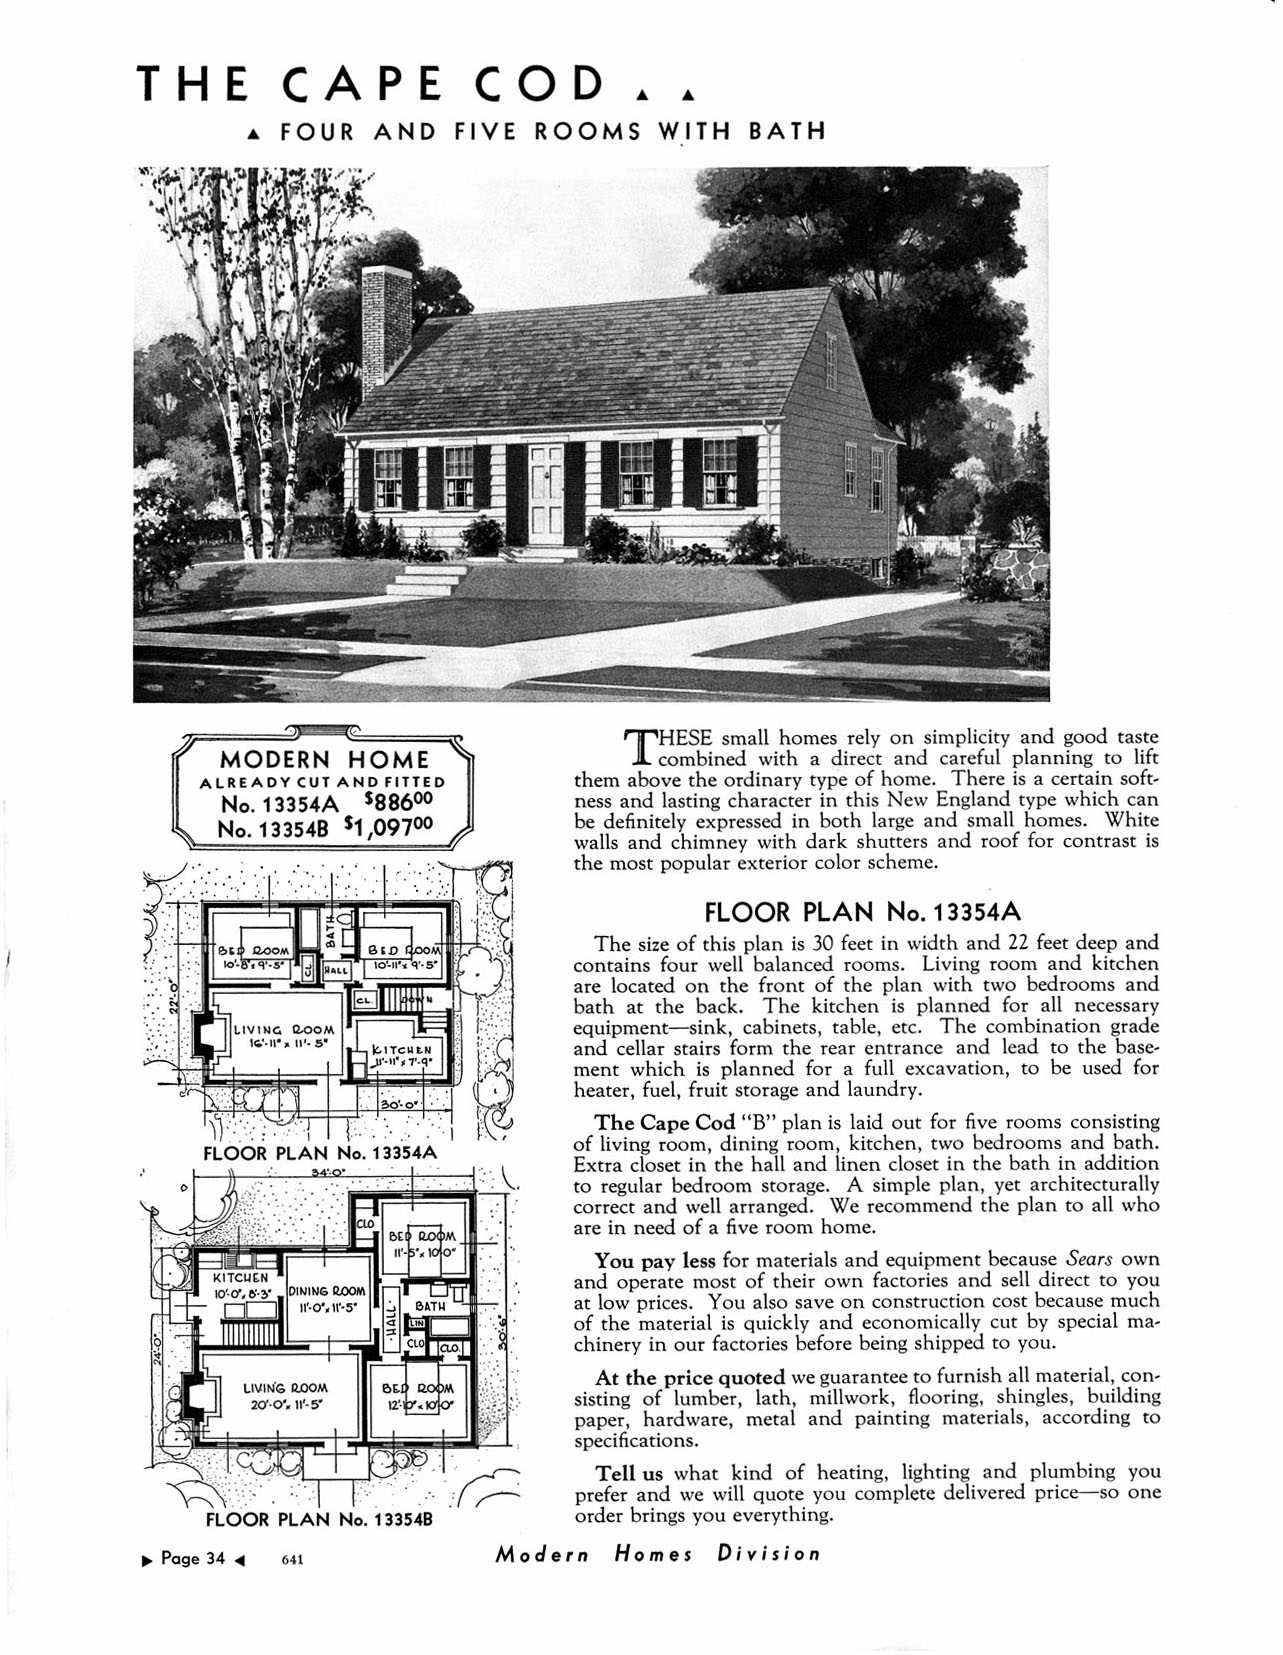 The Cape Cod A Sears Roebuck House Kit 1933 Cape Cod House Plans Cape Cod House Vintage House Plans